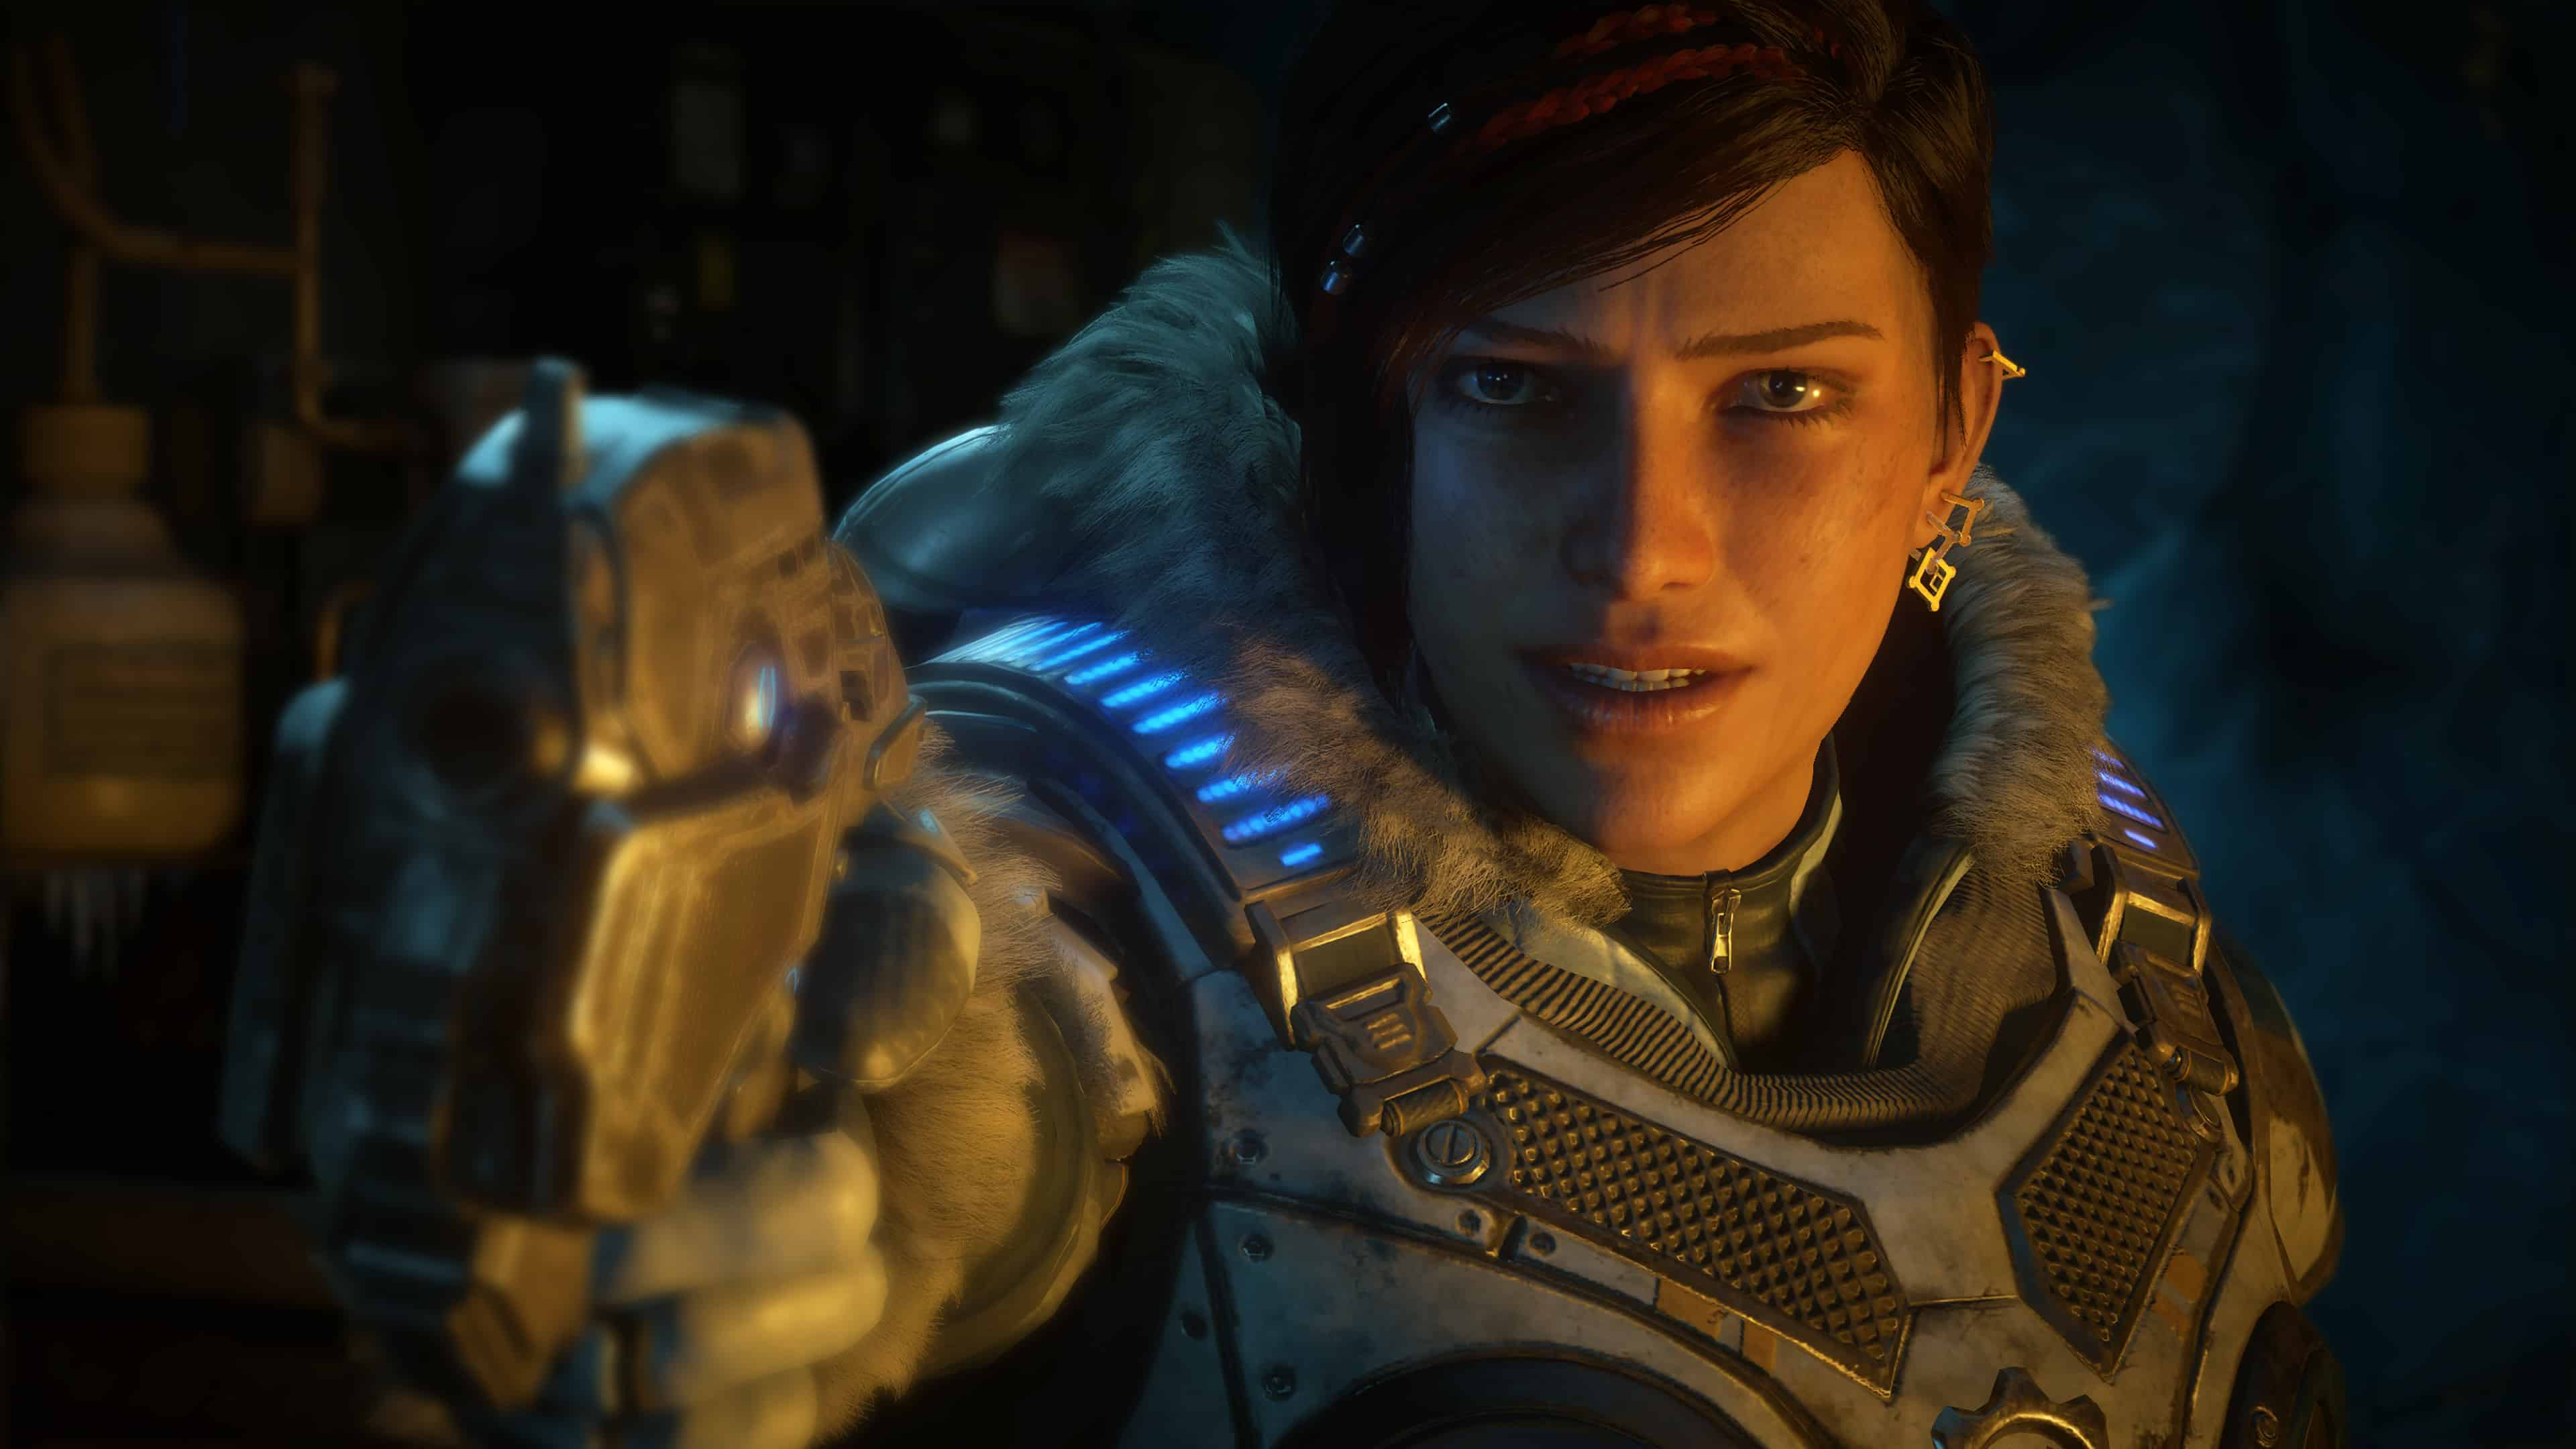 gears of war 5 kait diaz uhd 4k wallpaper